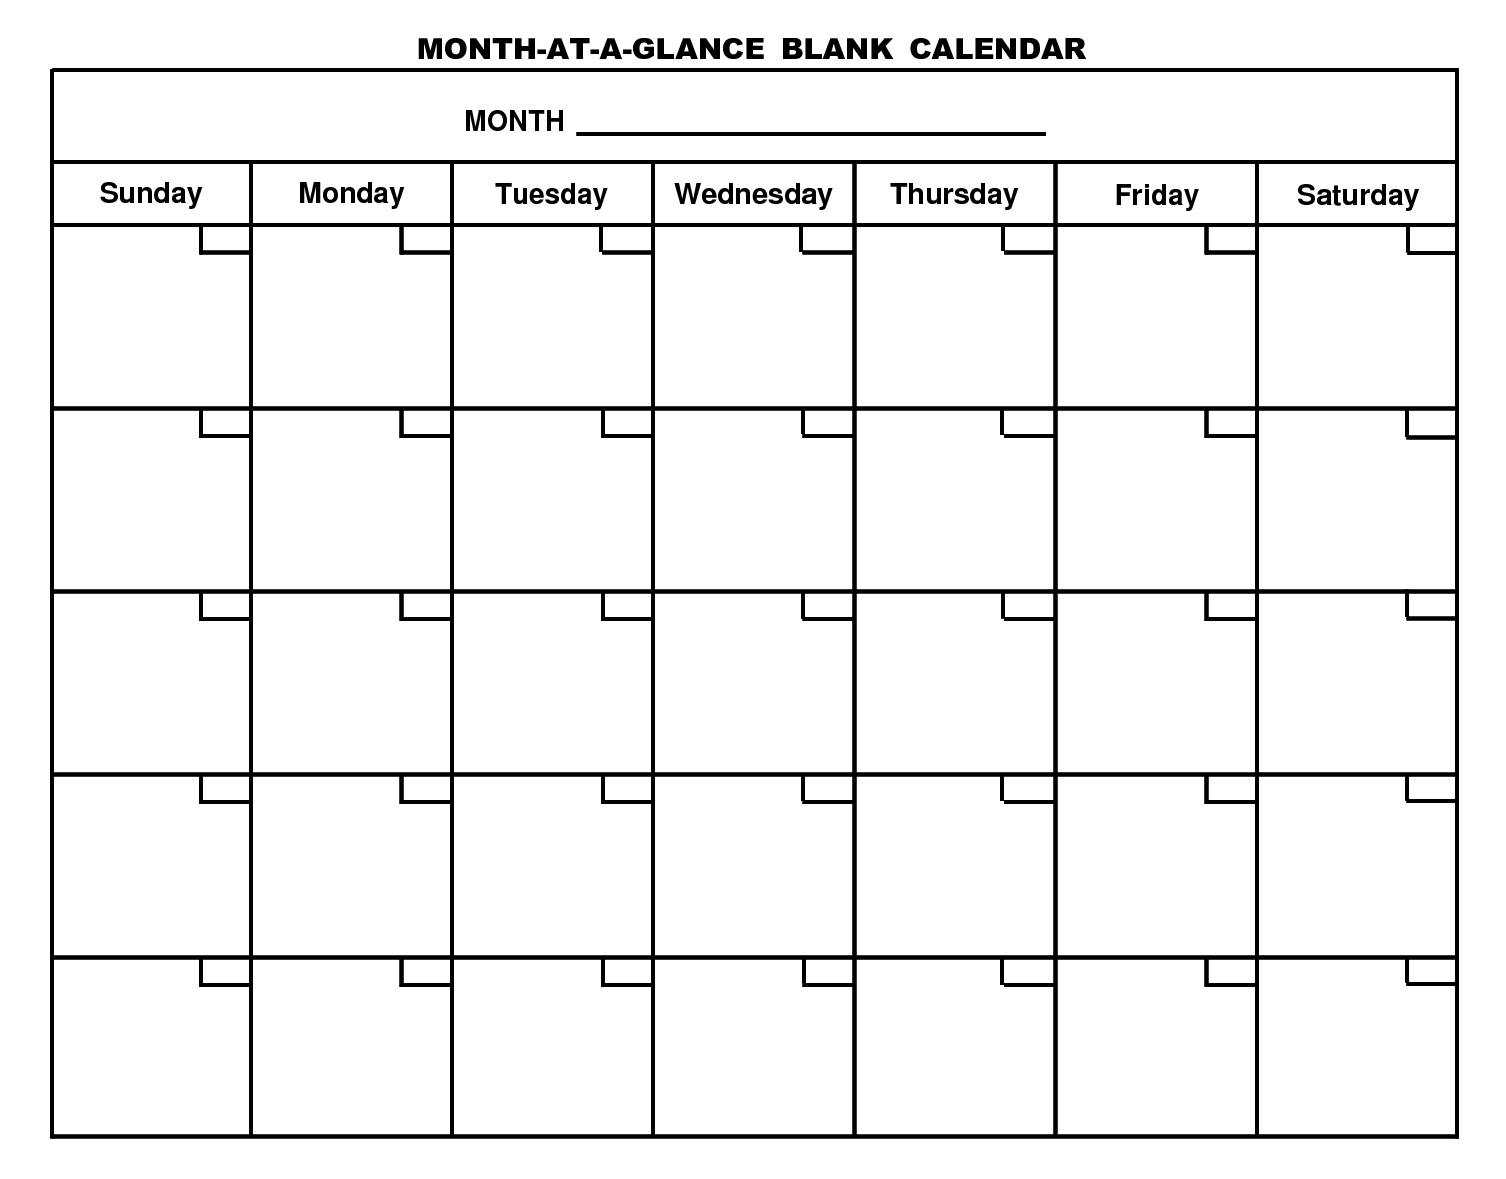 Free Printables Archives Print Me Baby   Calendar Template 2019 regarding Month At A Glance Blank Calendar Template